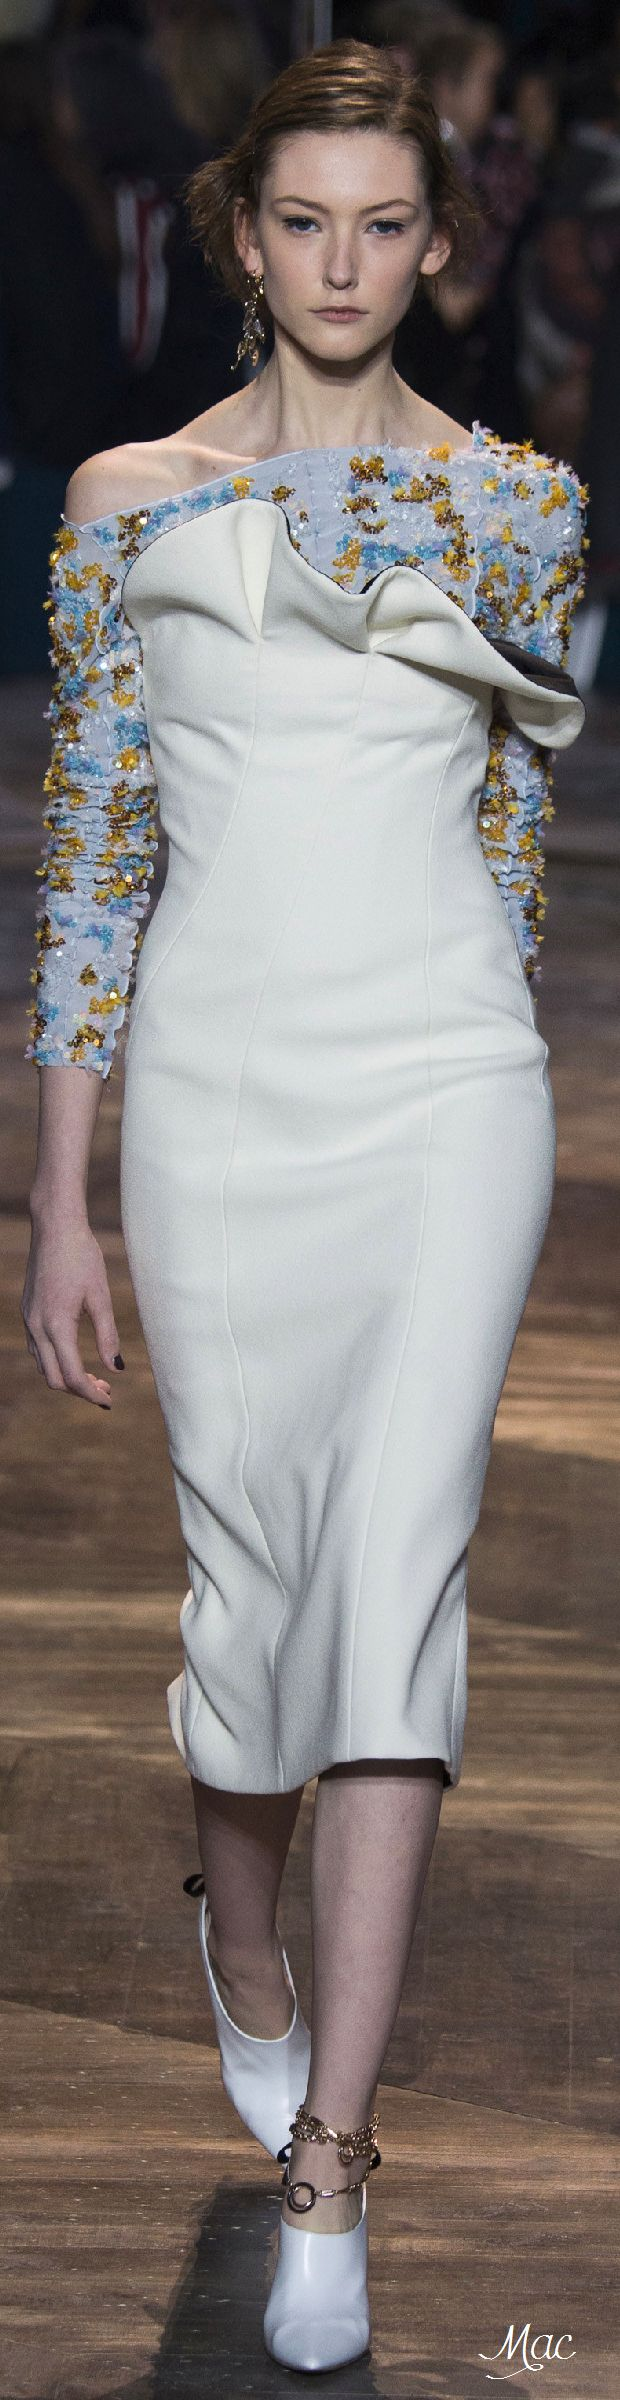 Spring 2015/2016 Haute Couture Christian Dior